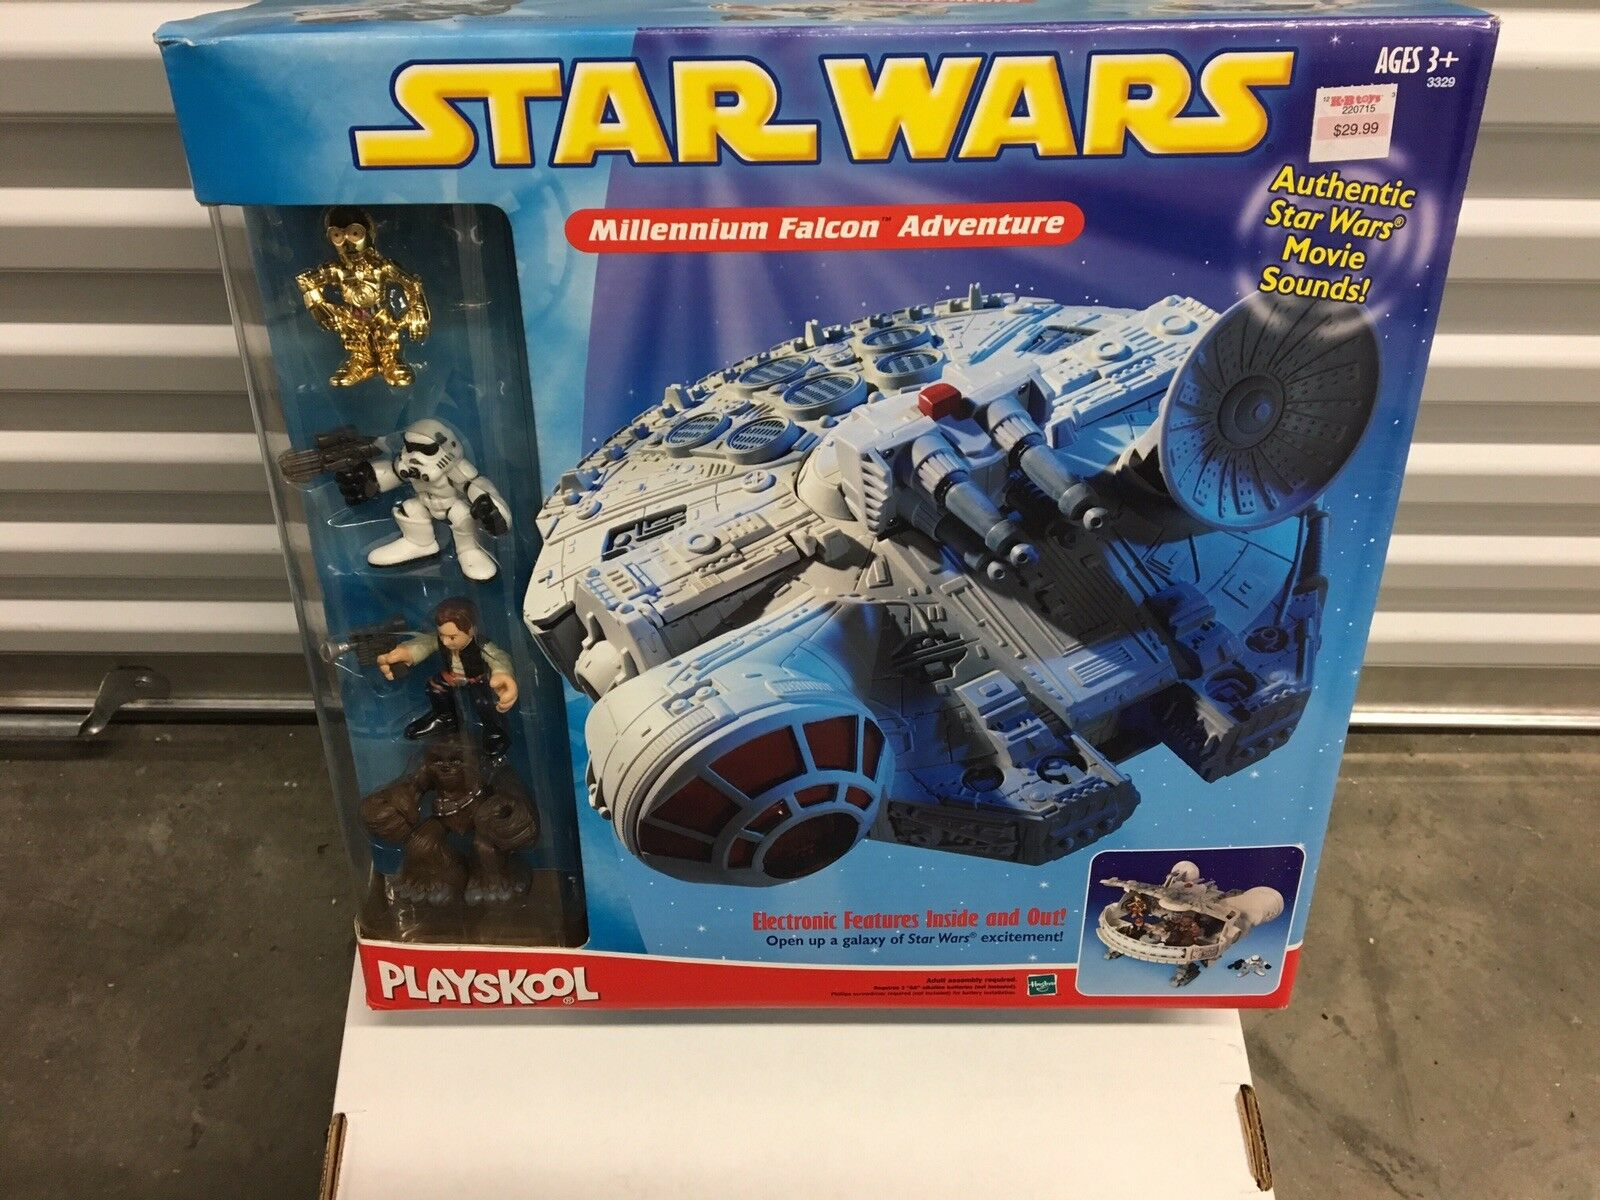 Playskool Galactic Heroes Star Wars Set - Millennium Falcon Adventure